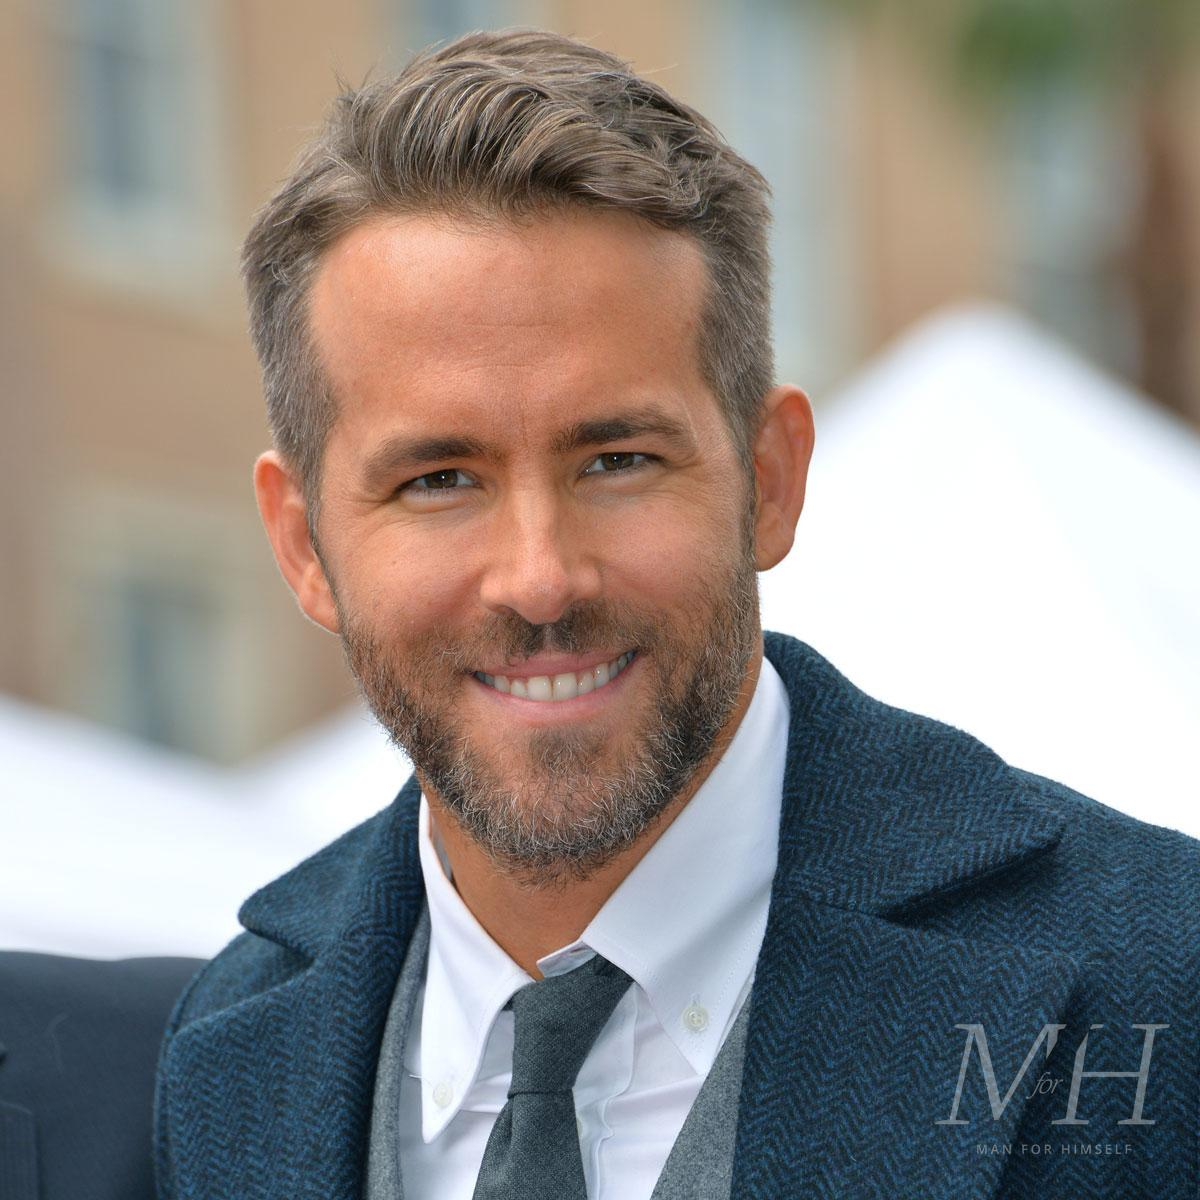 celebrity men's hairstyles 2019 | man for himself